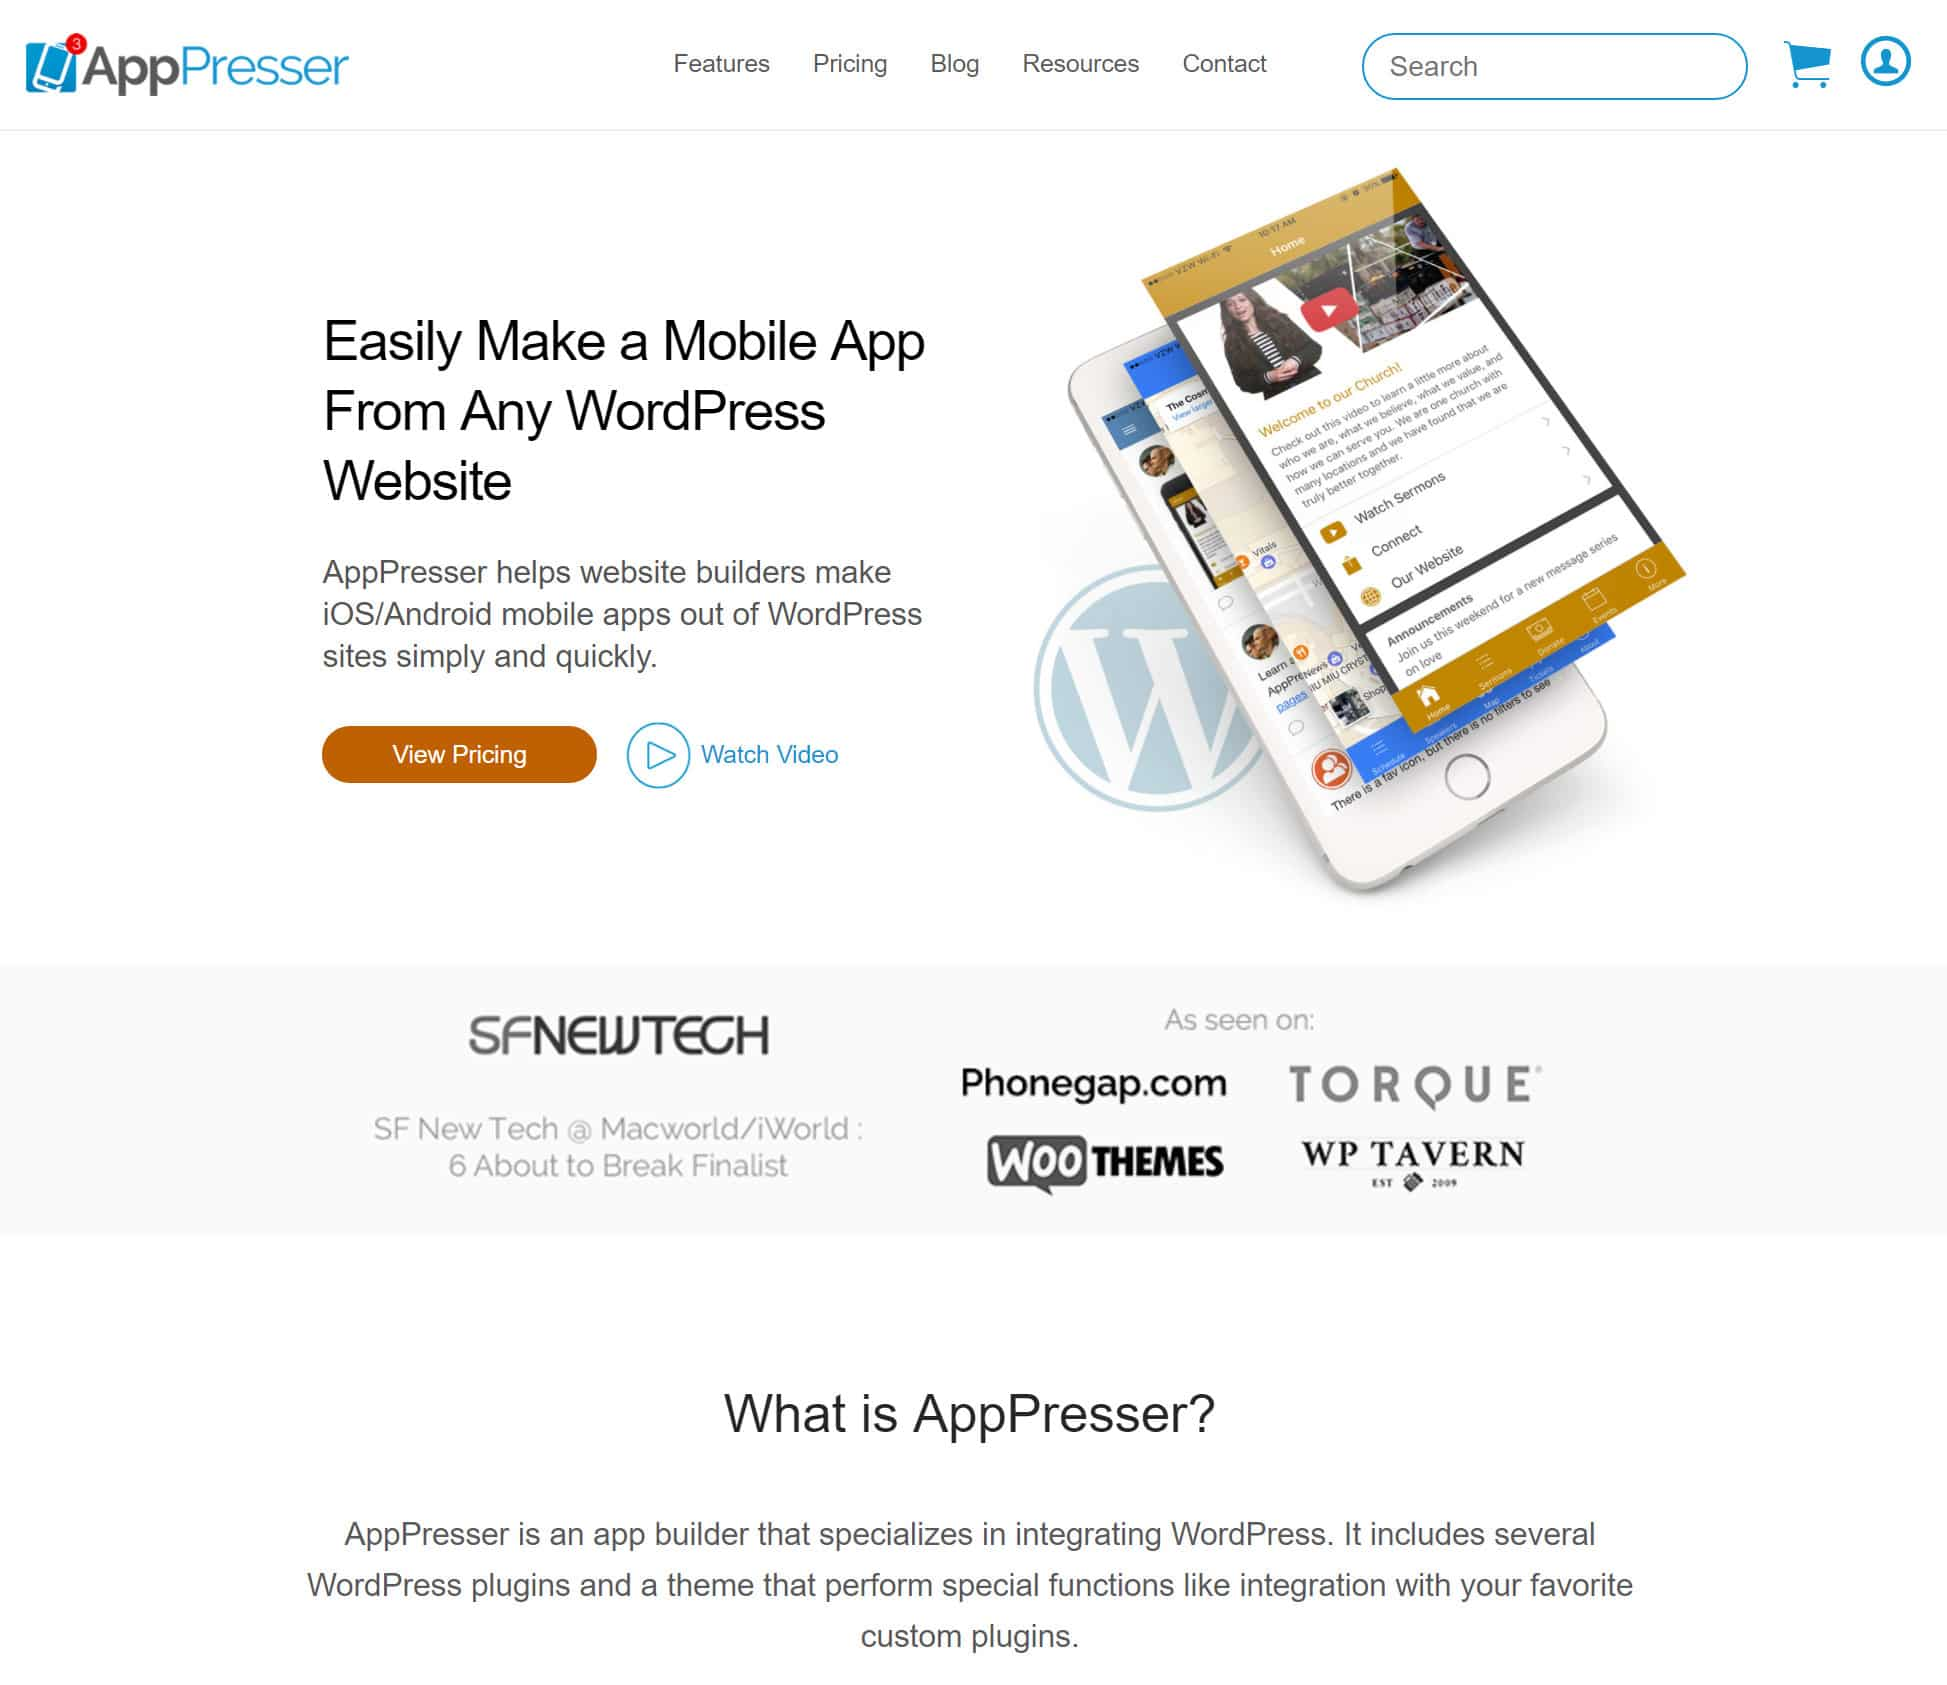 AppPresser website